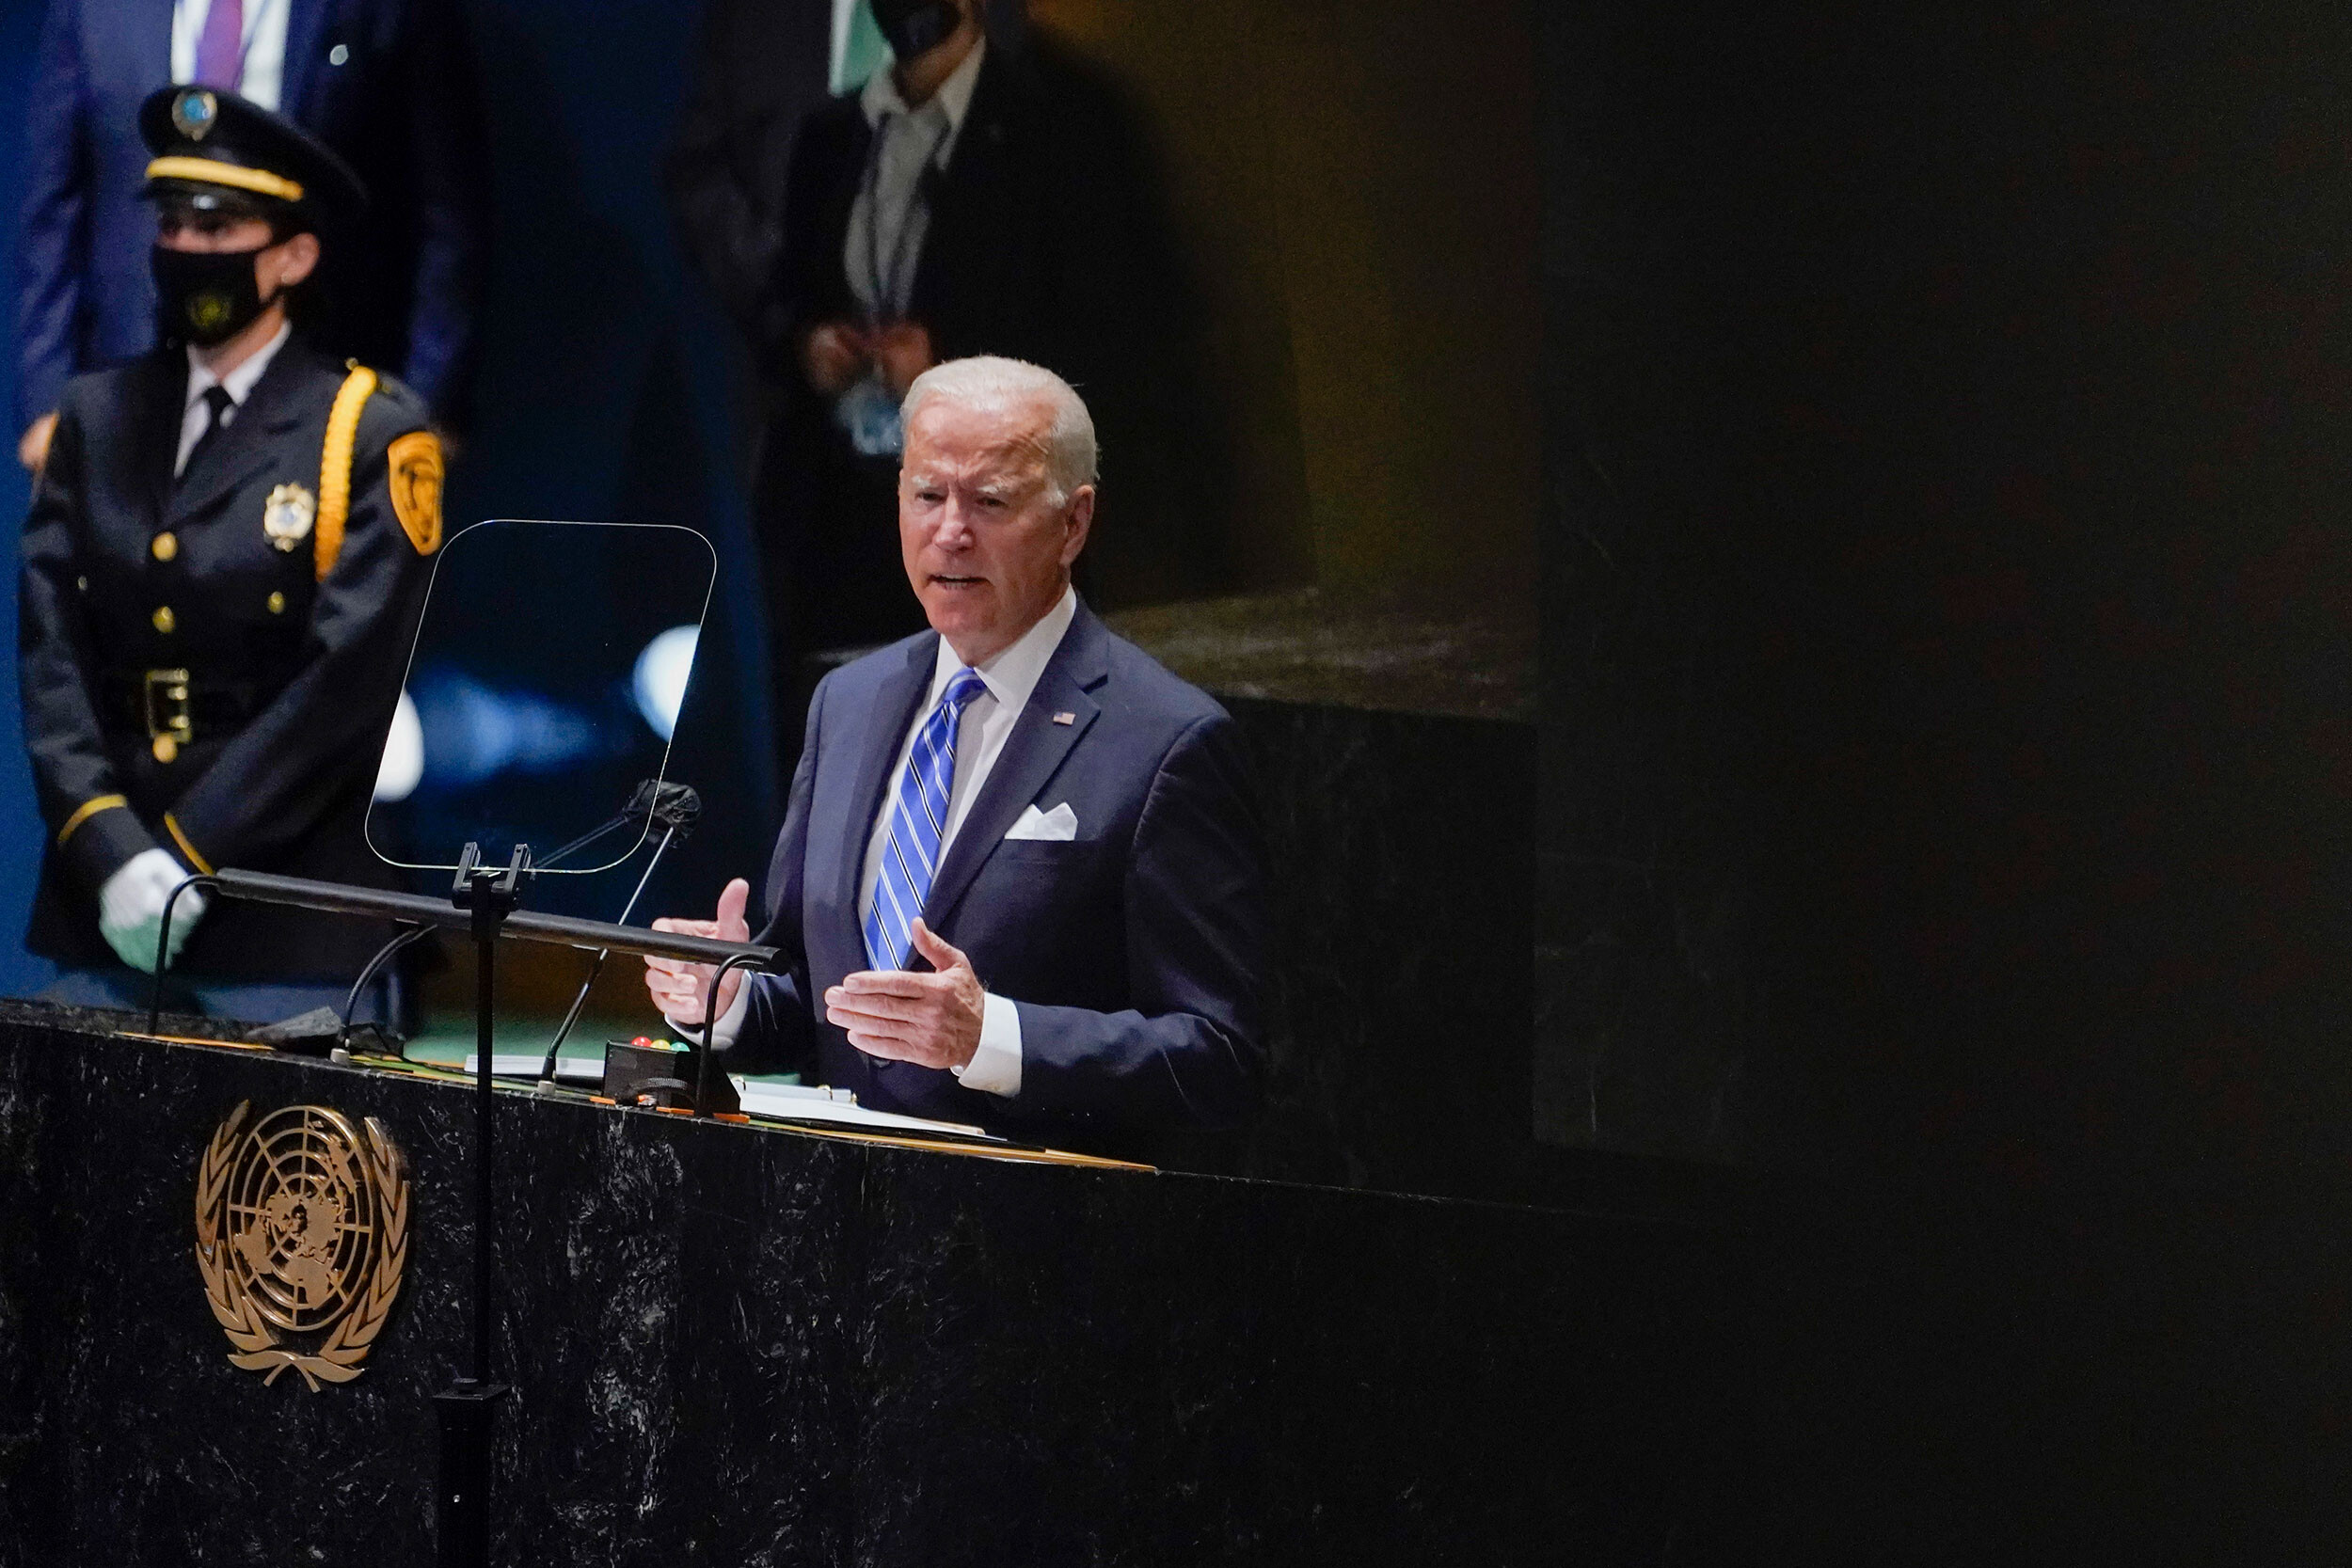 Biden called for diplomacy over conflict at the UN General Assembly. Here's how world leaders responded